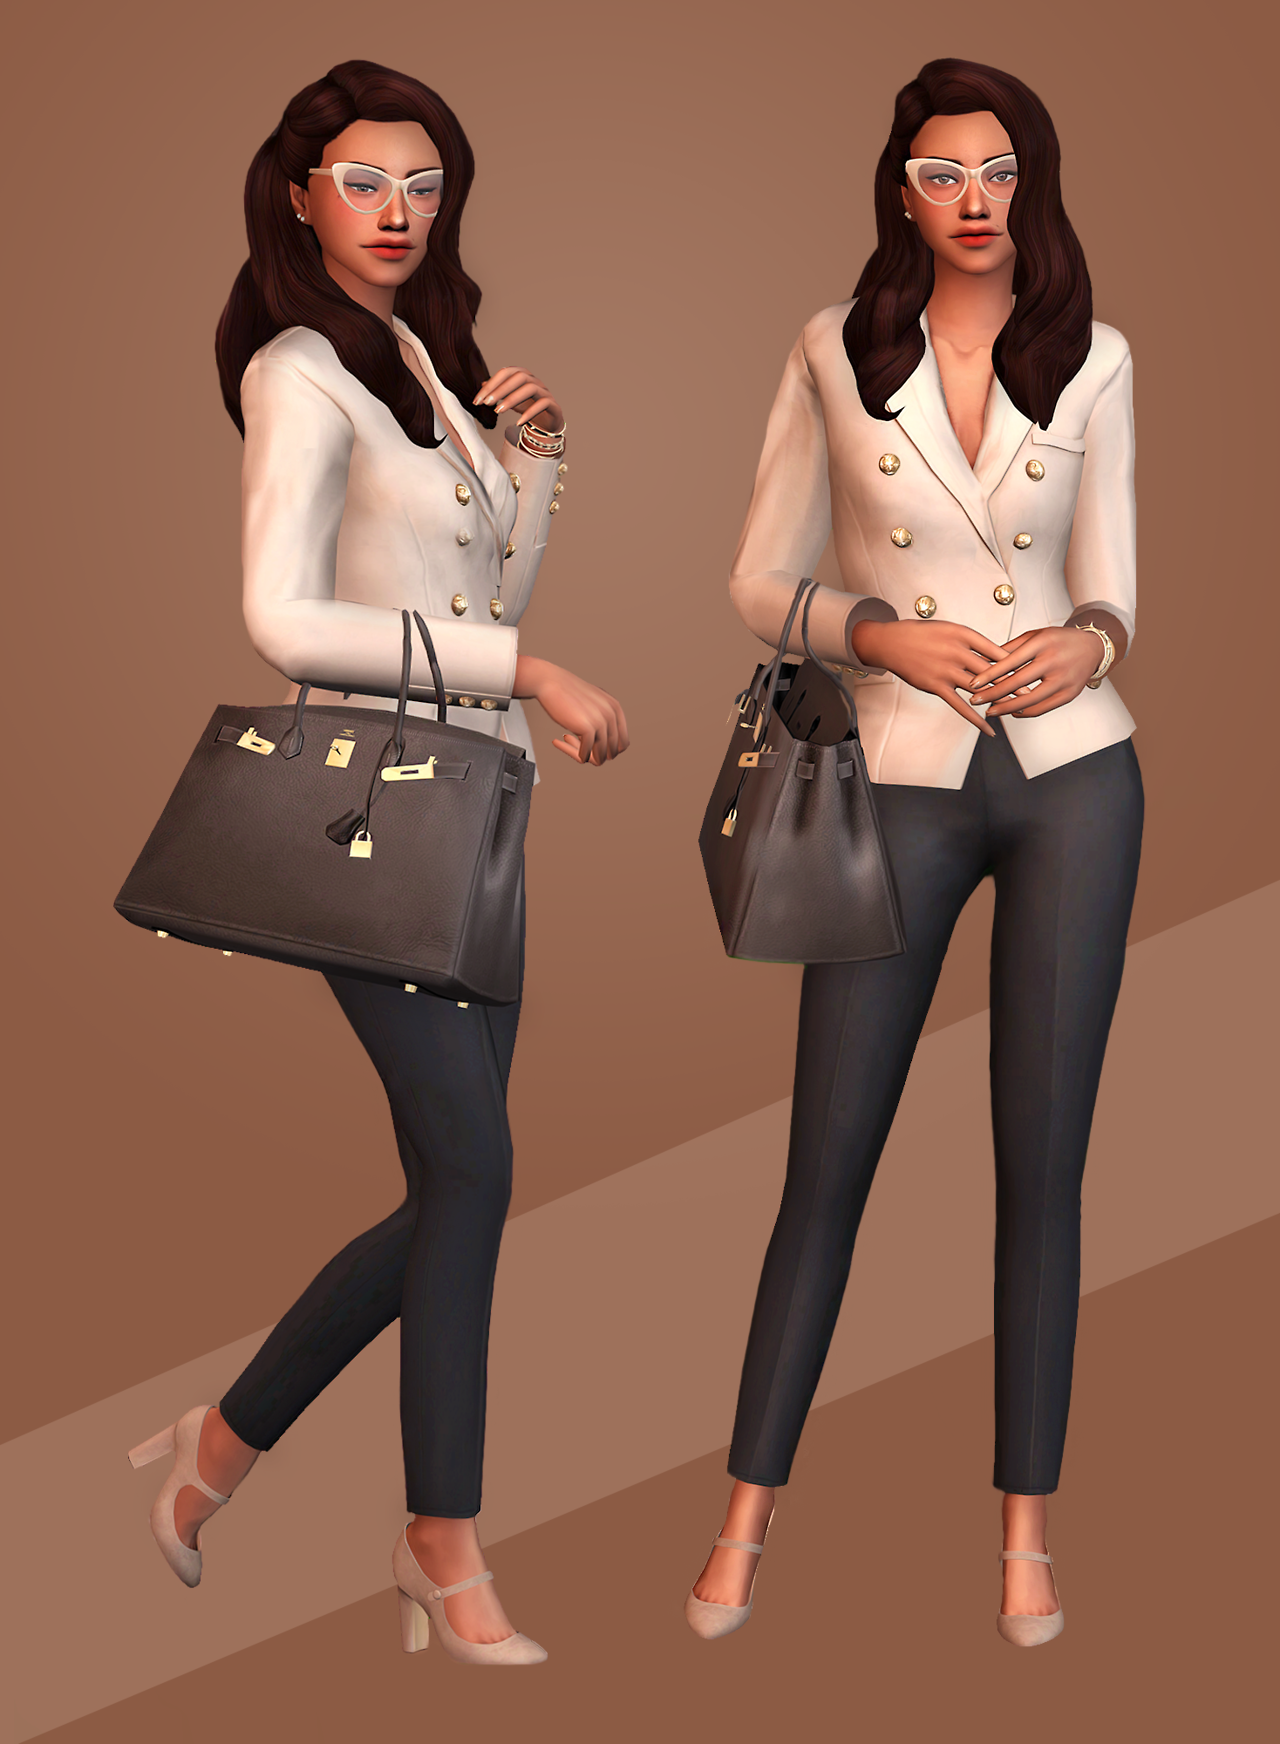 staywithsims 25 day lookbook challenge a day 2 business